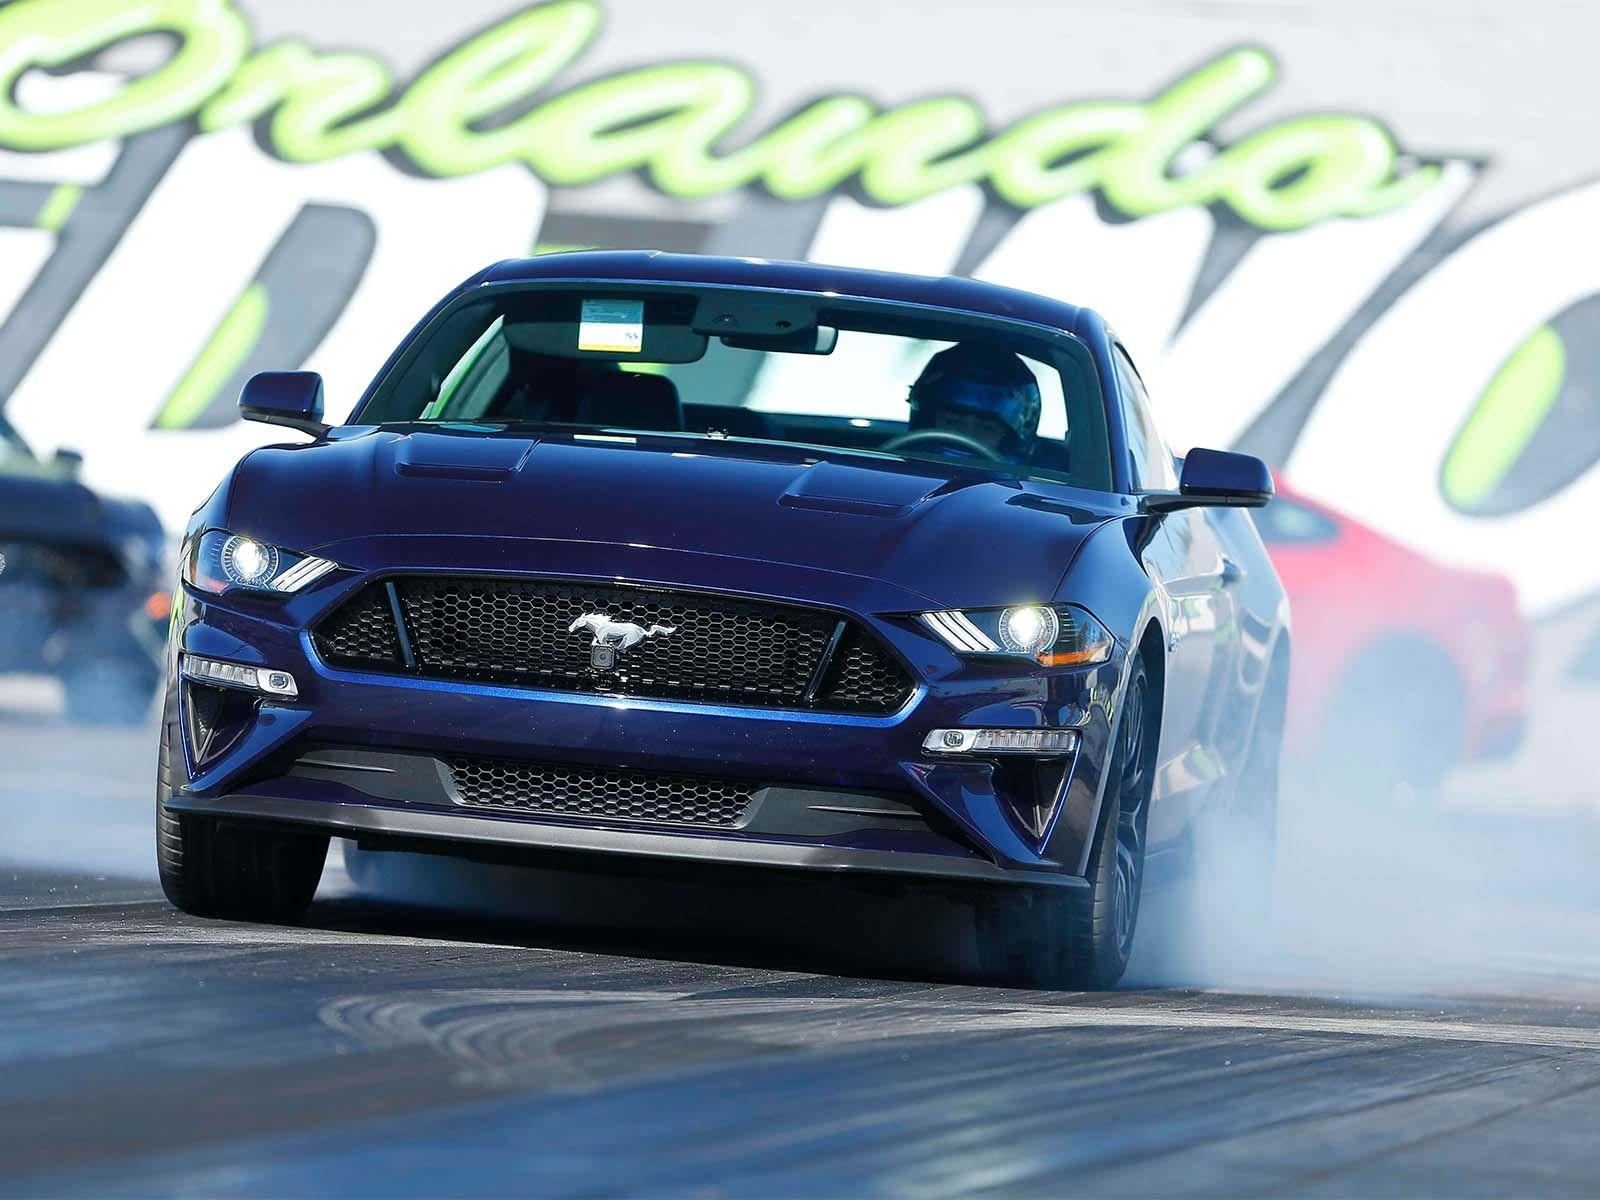 How Fast Can The 2018 Ford Mustang GT Do The Quarter Mile? - CarBuzz